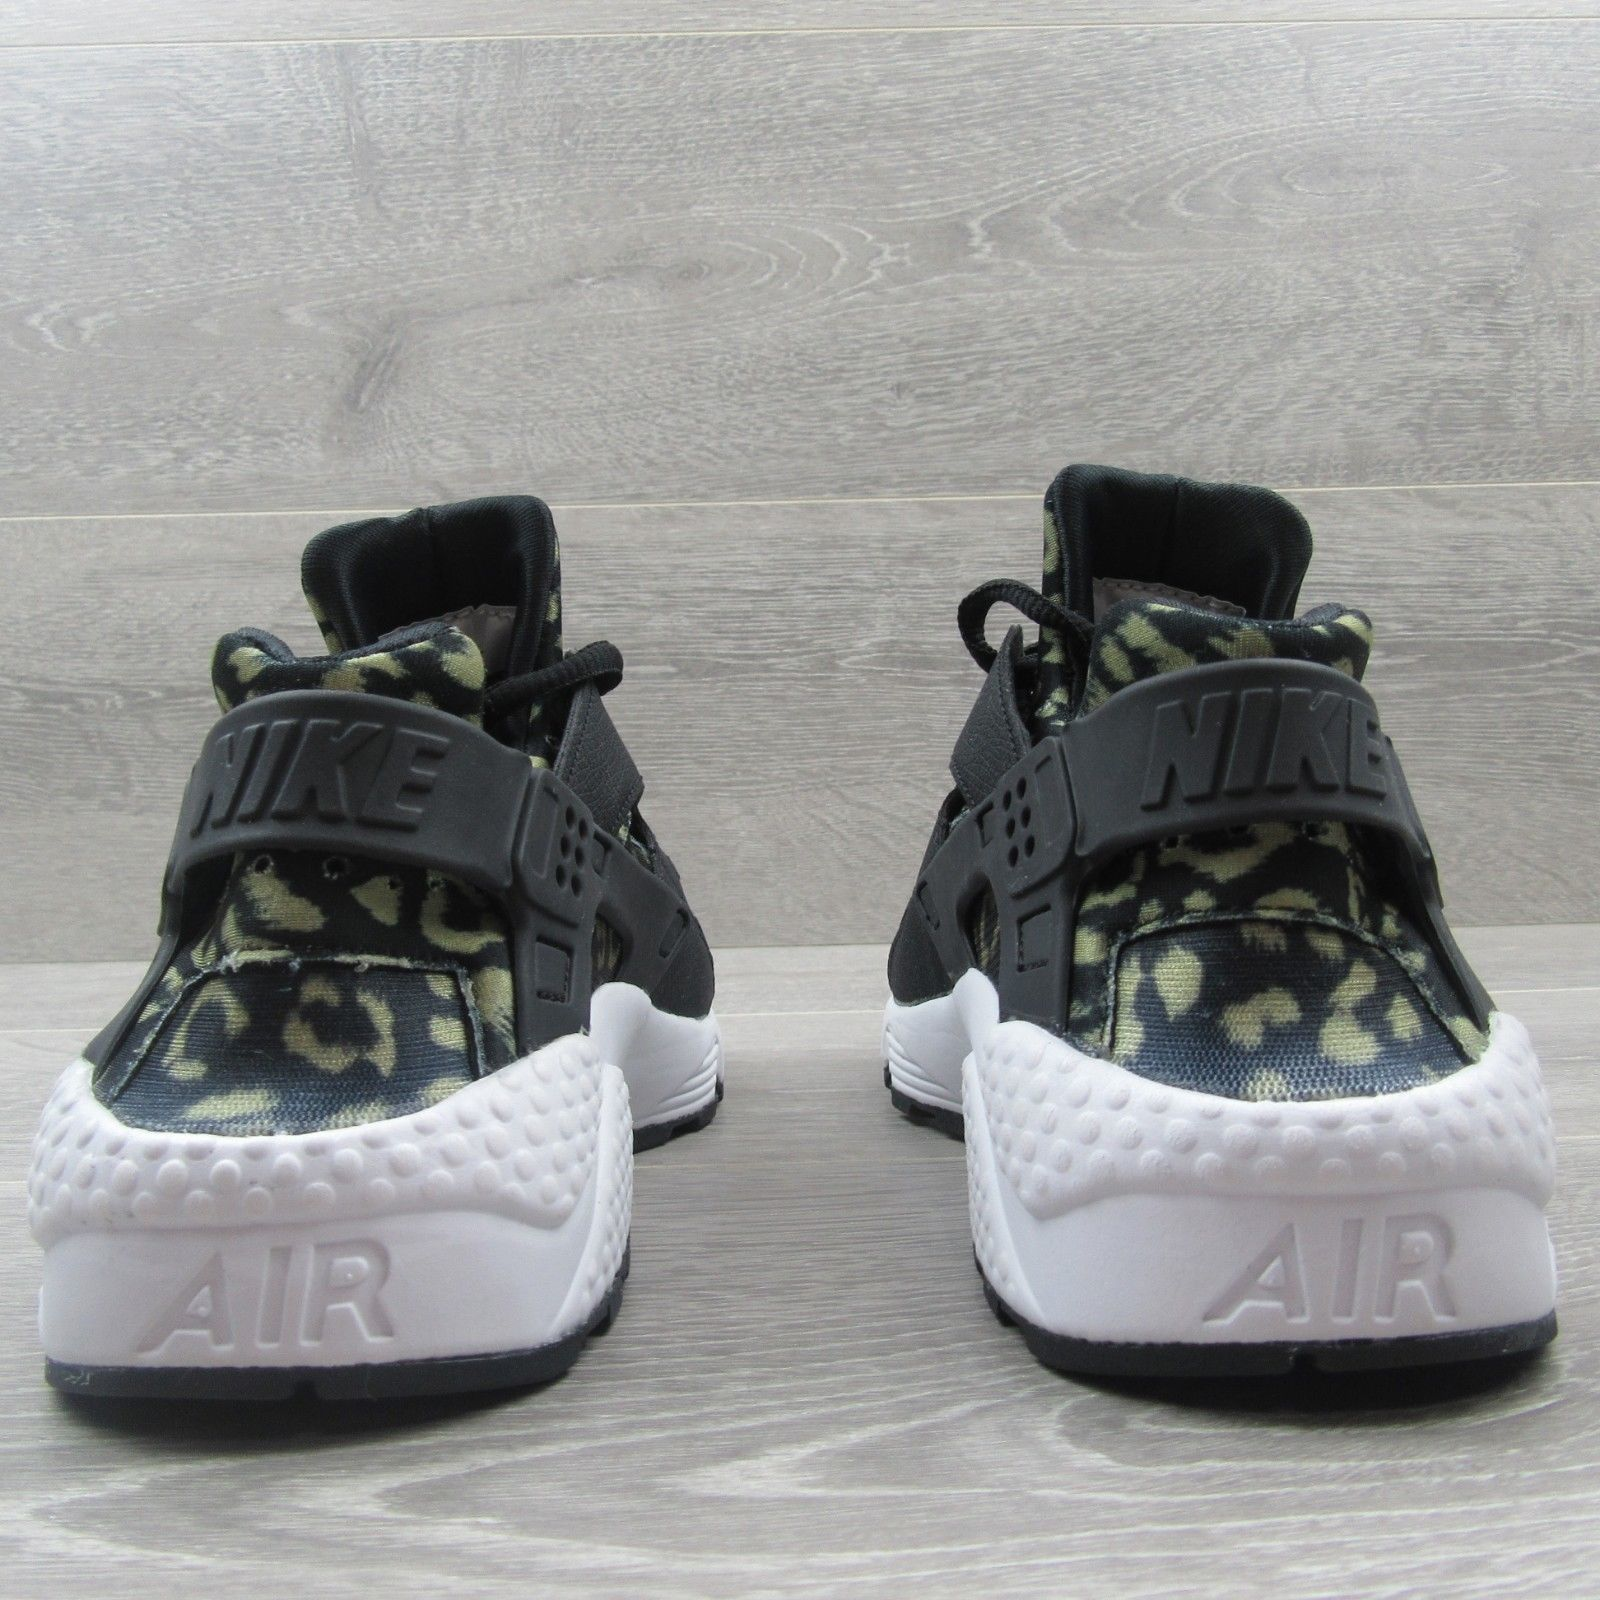 b14f8508d0291 Nike Air Huarache Shoes Size 6.5 Womens Leopard Print Black Beige New  725076 007